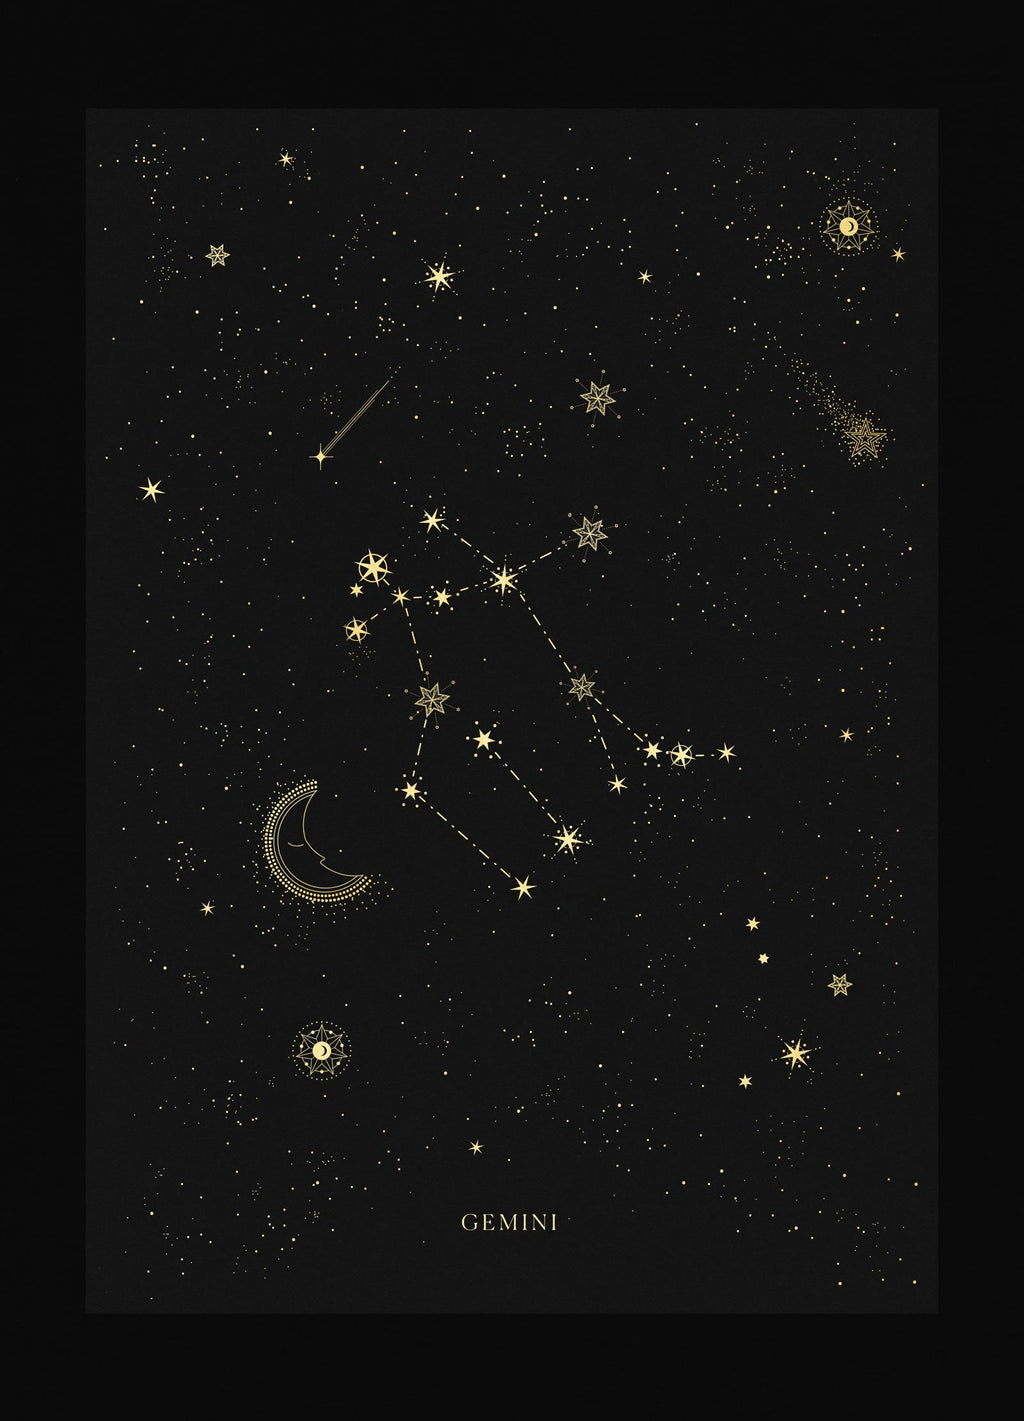 Gemini zodiac constellation gold metallic foil print on black paper by Cocorrina